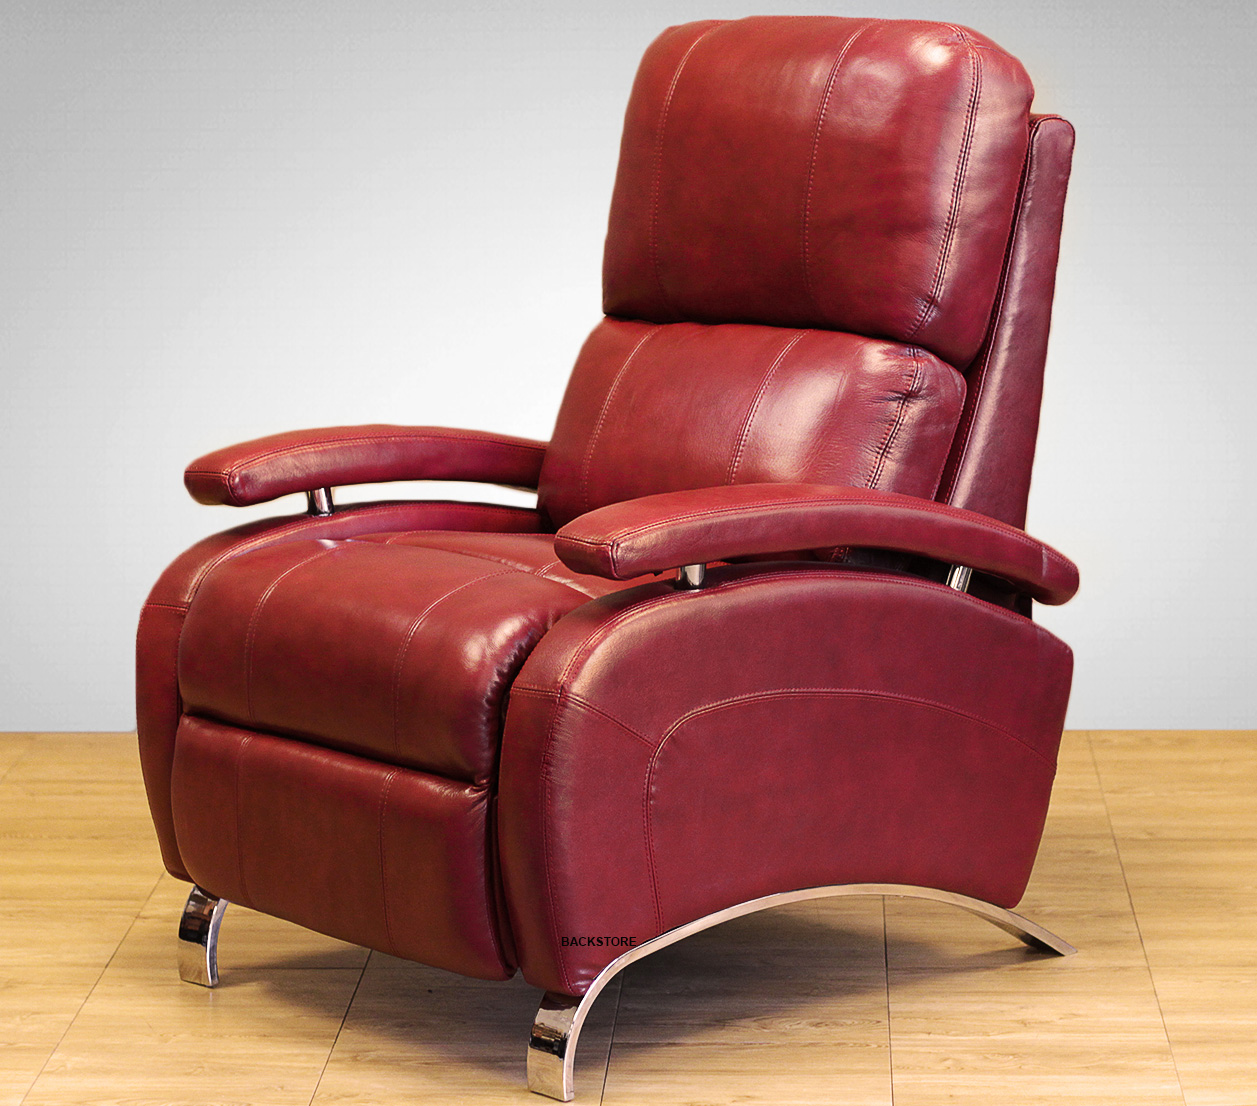 Barcalounger Oracle II Genuine Leather Recliner Lounger ...